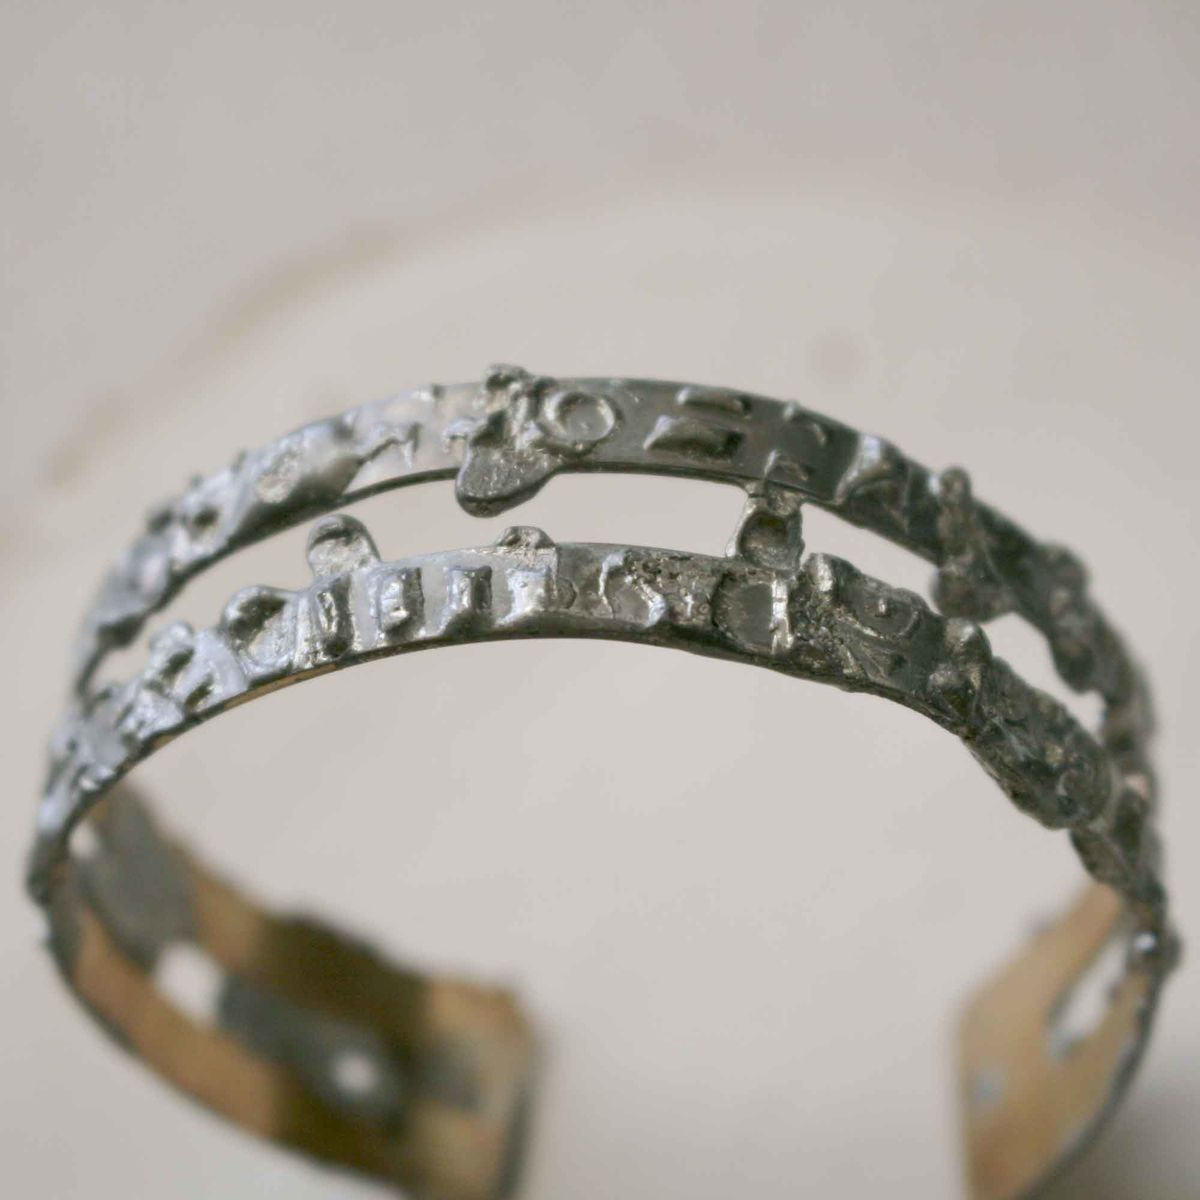 Rustic Texture Brass Cuff Bracelet with Stamped Pewter Solder - product images  of